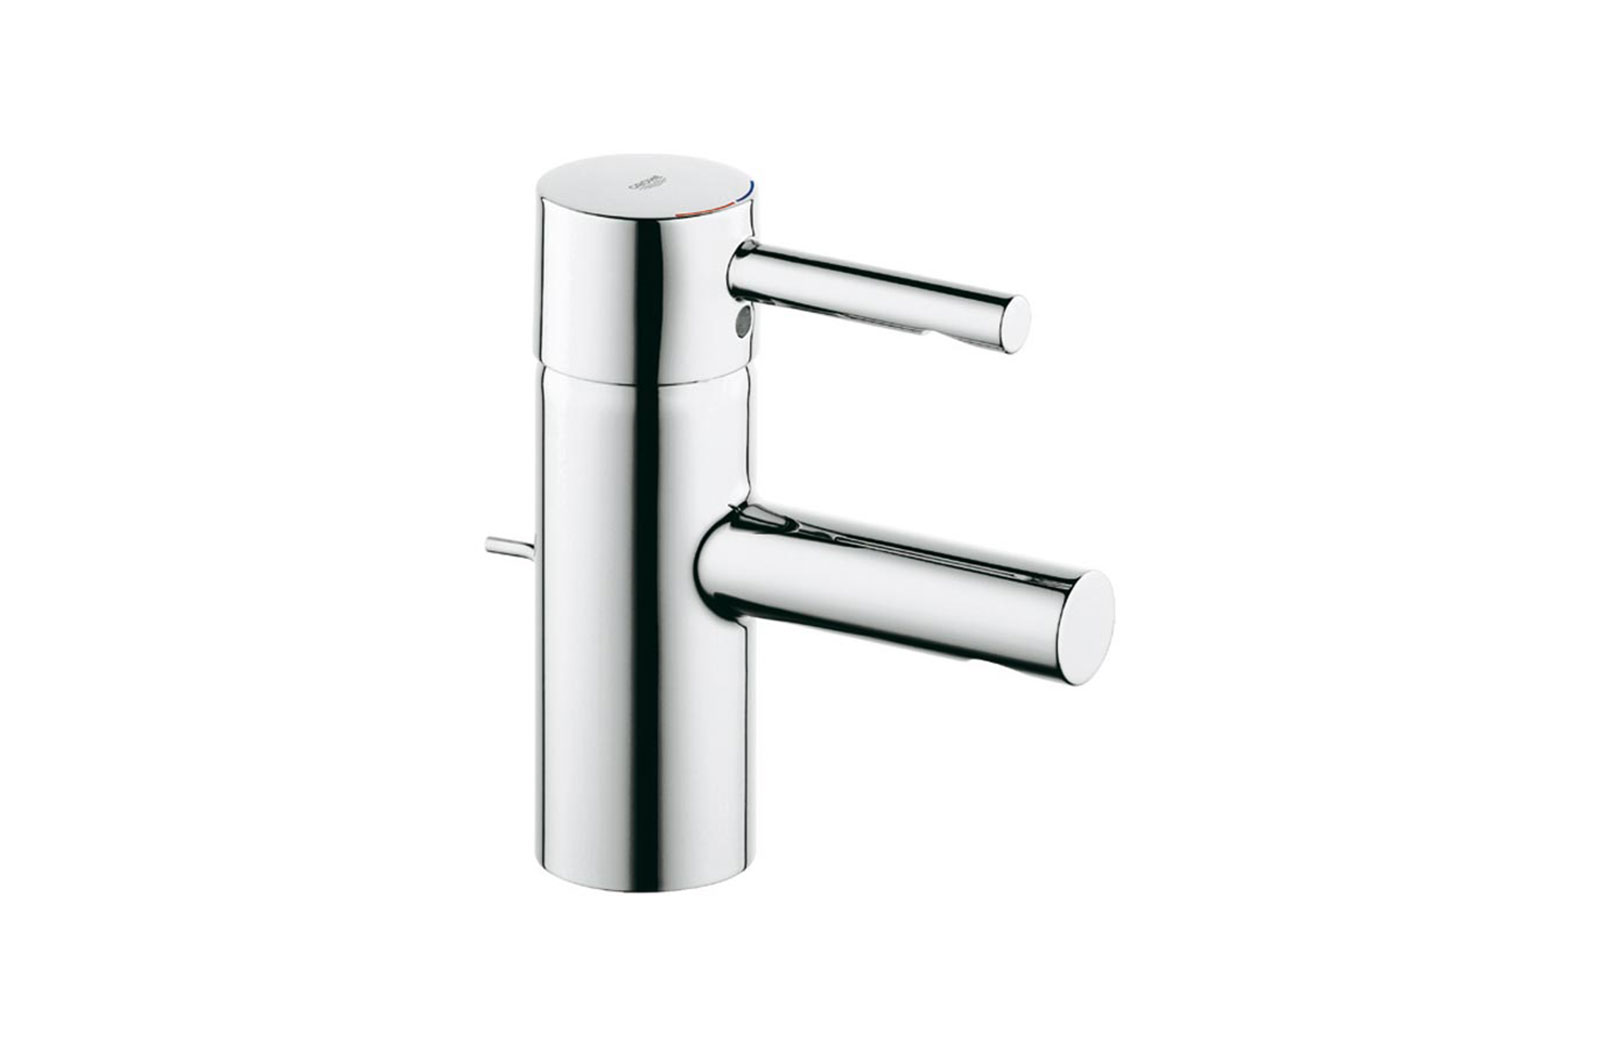 Robinet Vasque Robinet Lavabo And Vasque Essence Grohe Schmitt Ney